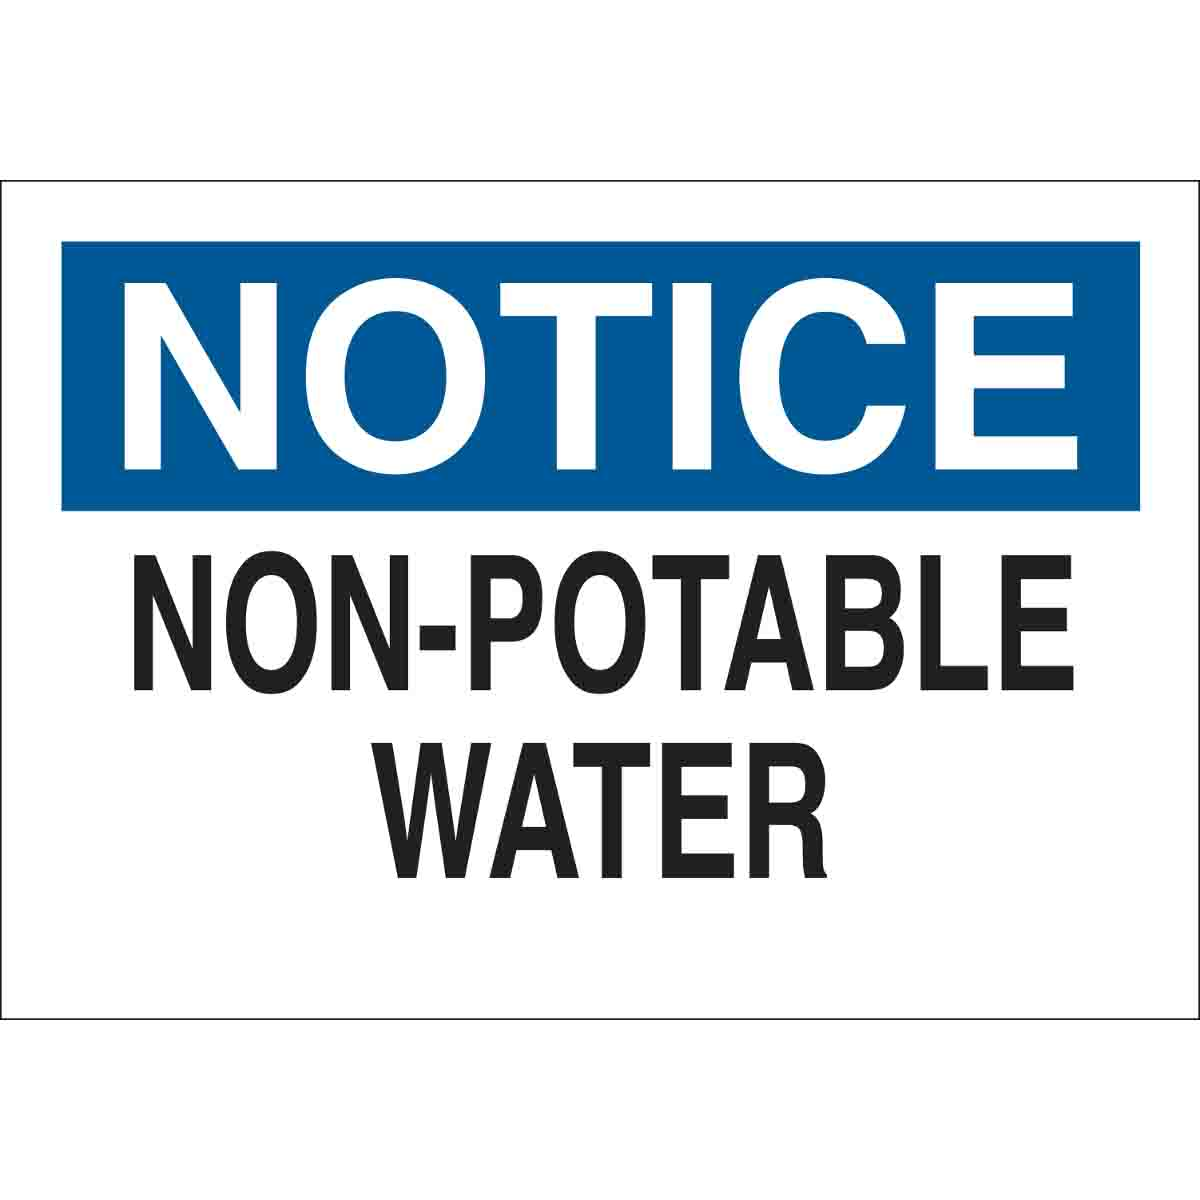 Brady part 22359 notice non potable water sign for Potable water